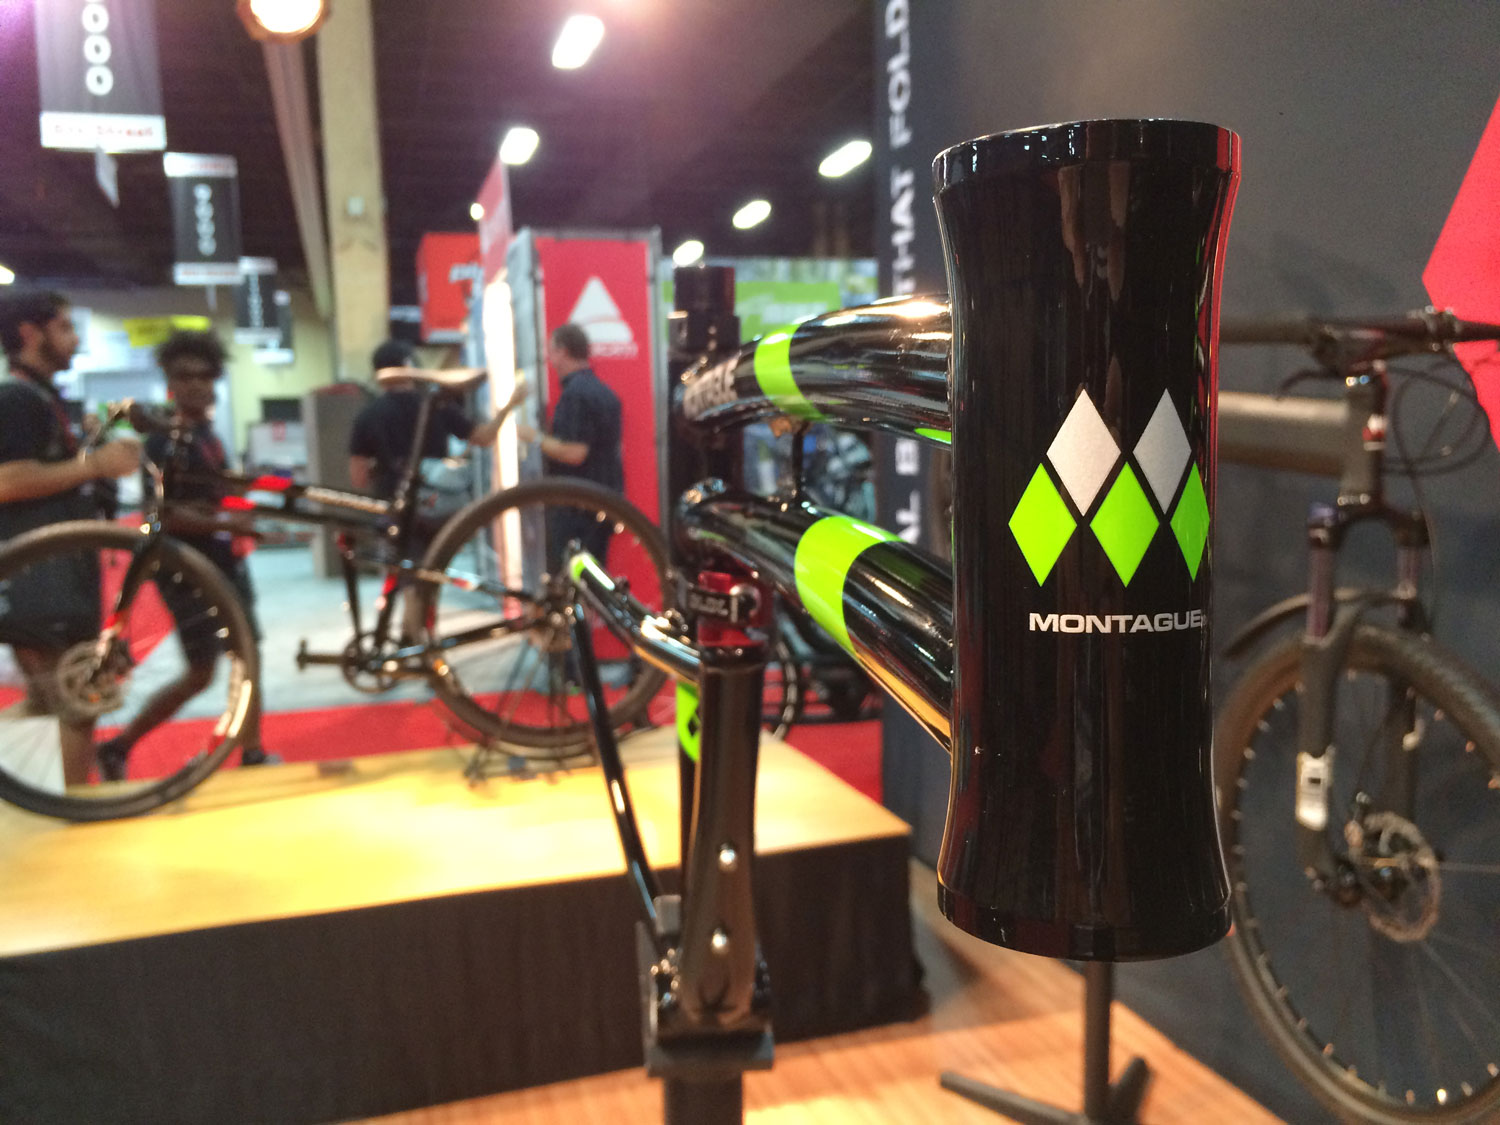 Interbike 2015 Recap & New Bike Preview